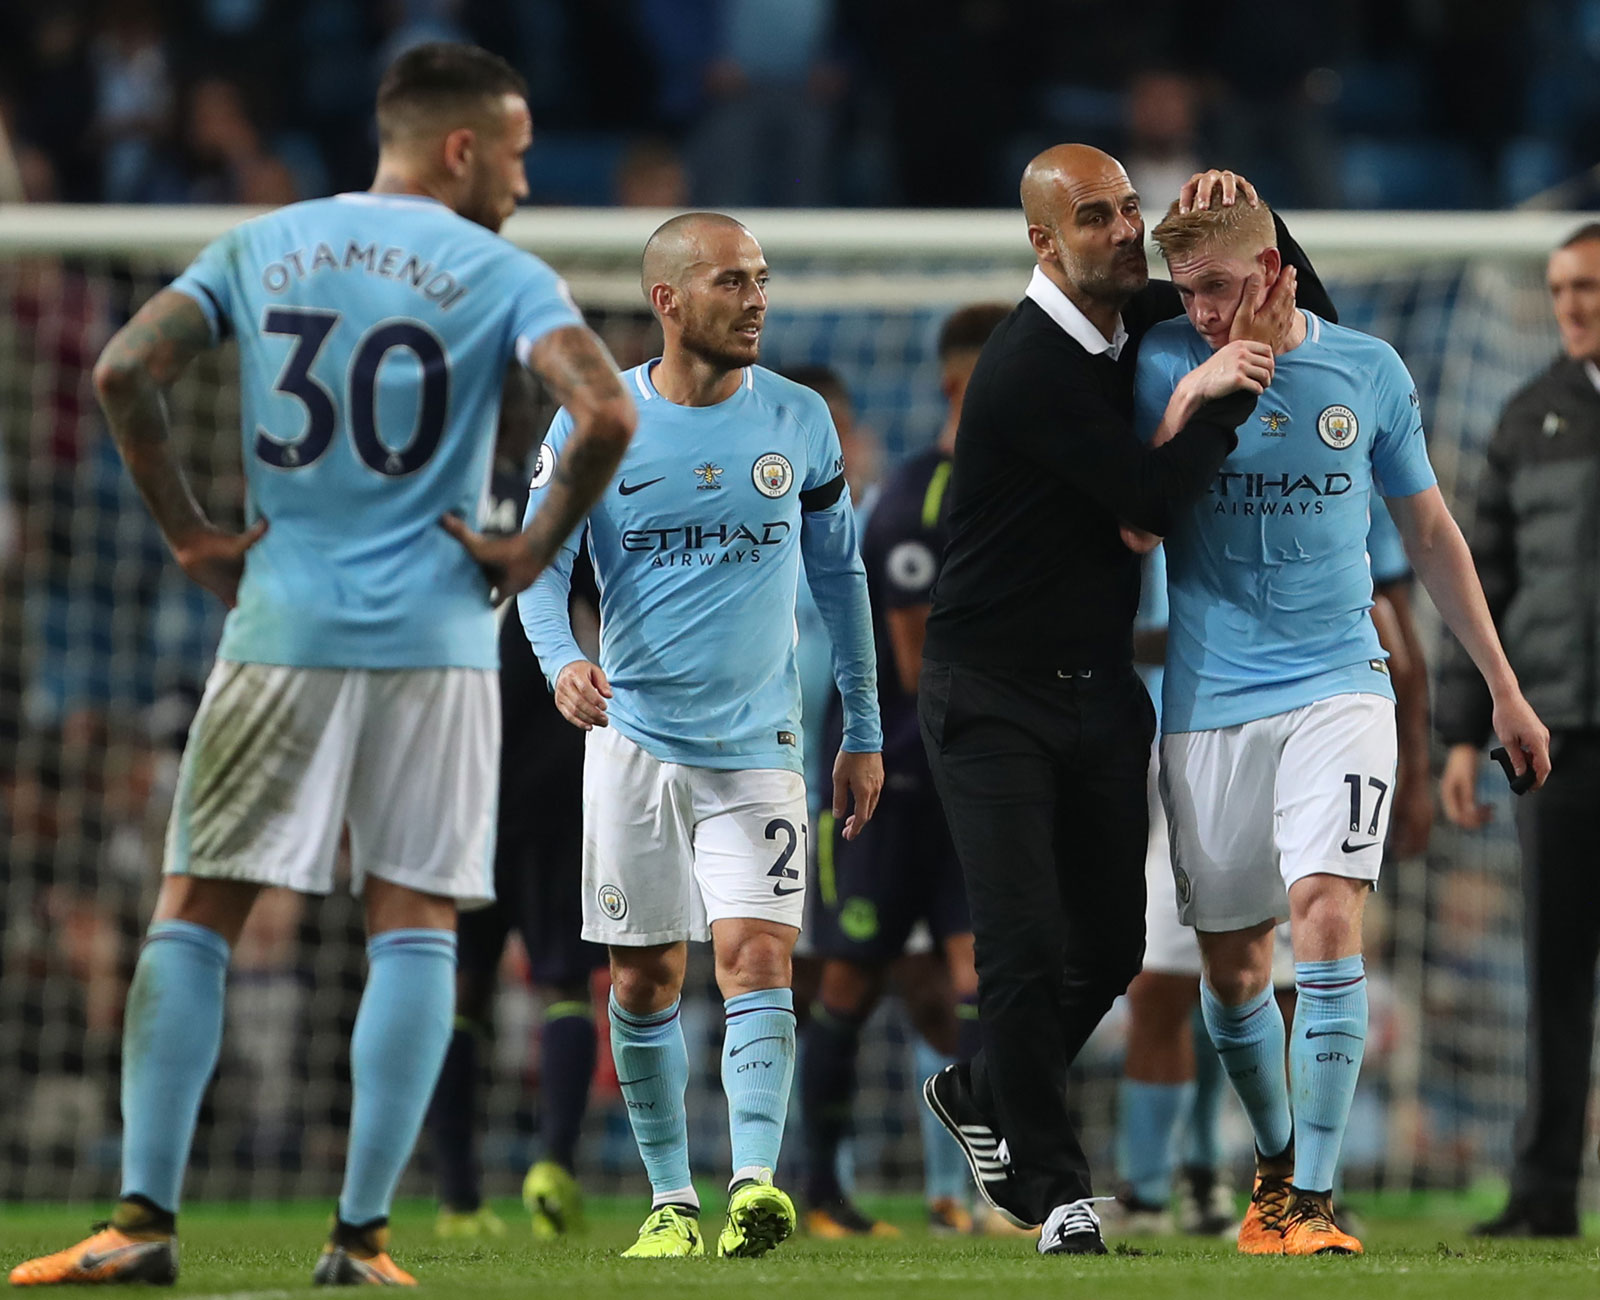 Man City star De Bruyne: We're ruthless compared to past year